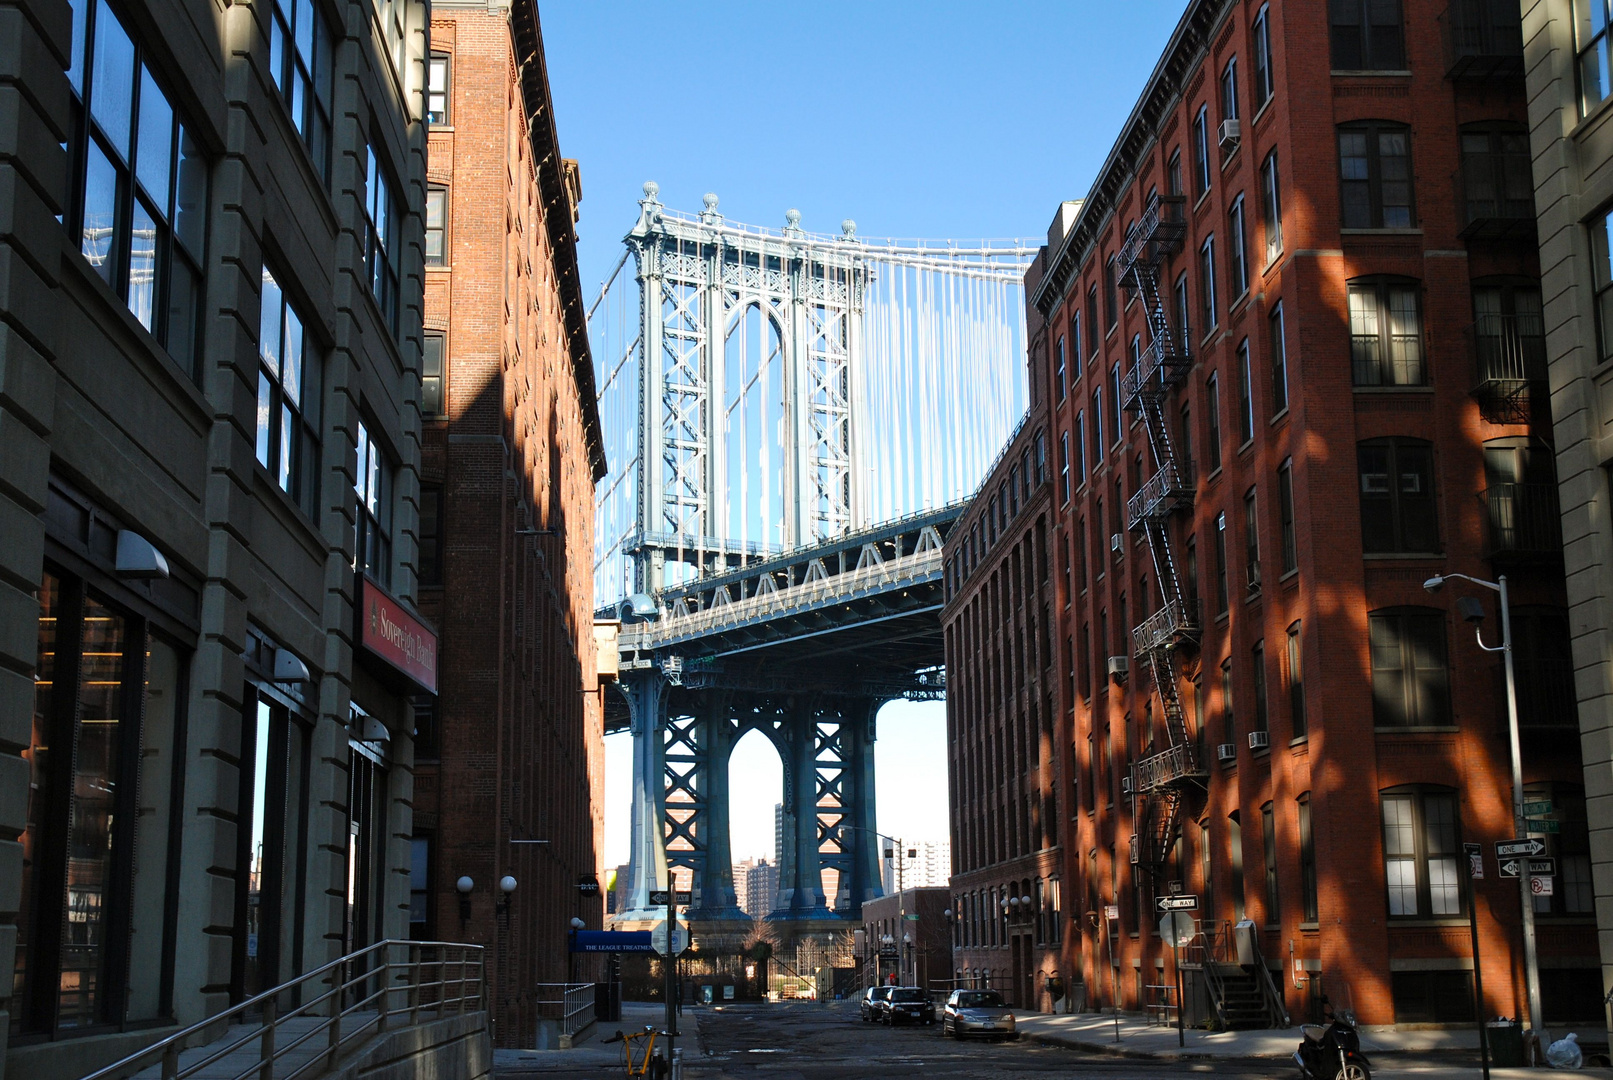 NYC Manhattan Bridge from Brooklyn